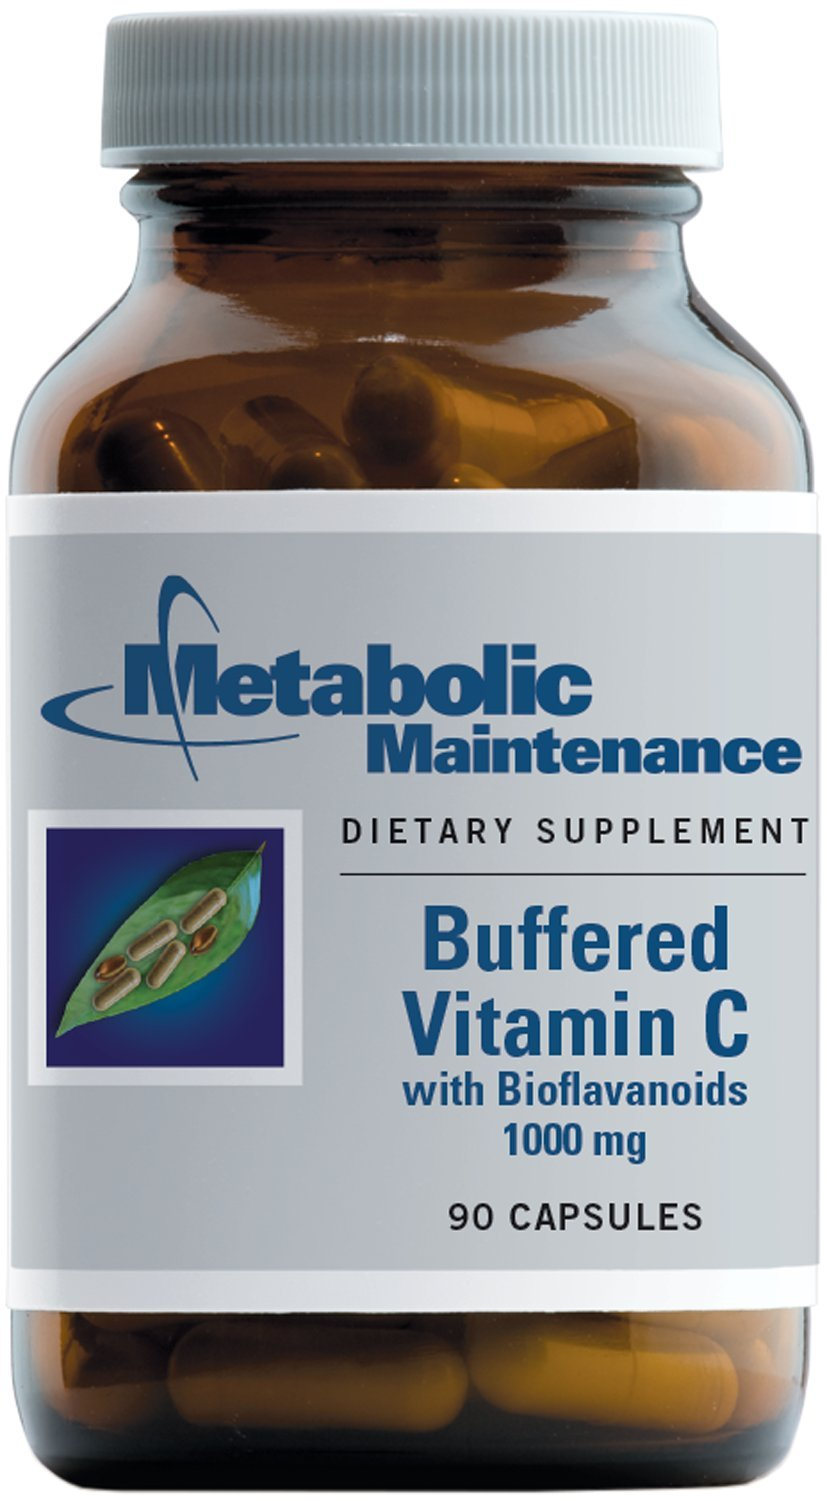 Metabolic Maintenance - Vitamin C - 1000 mg Buffered for Lower Stomach Acidity, 90 Capsules